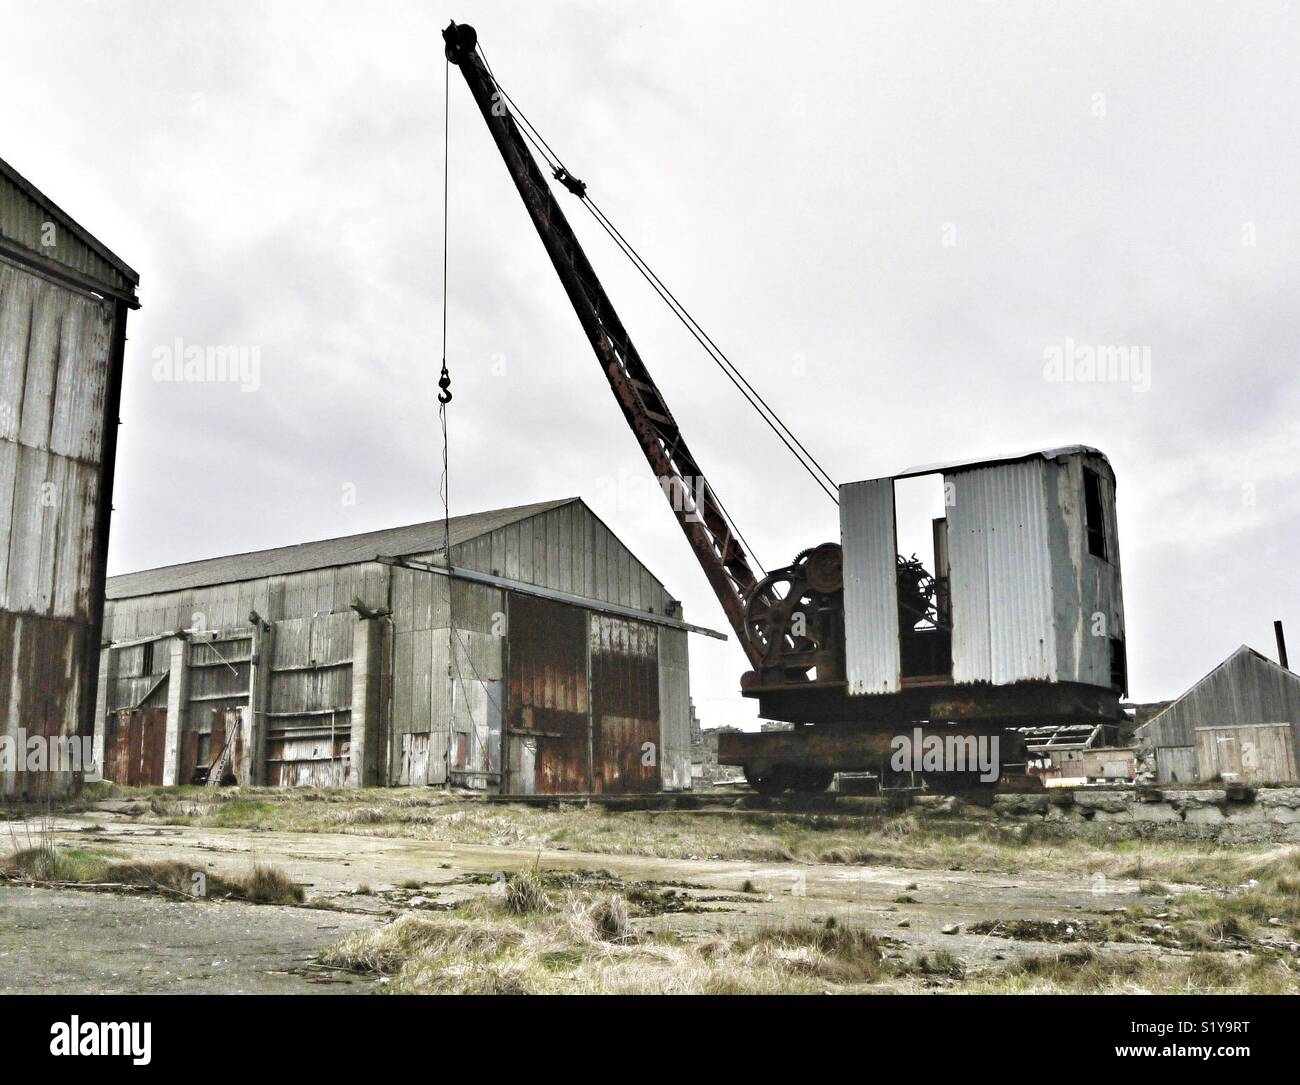 Derelict warehouses and crane in Scottish town. Stock Photo